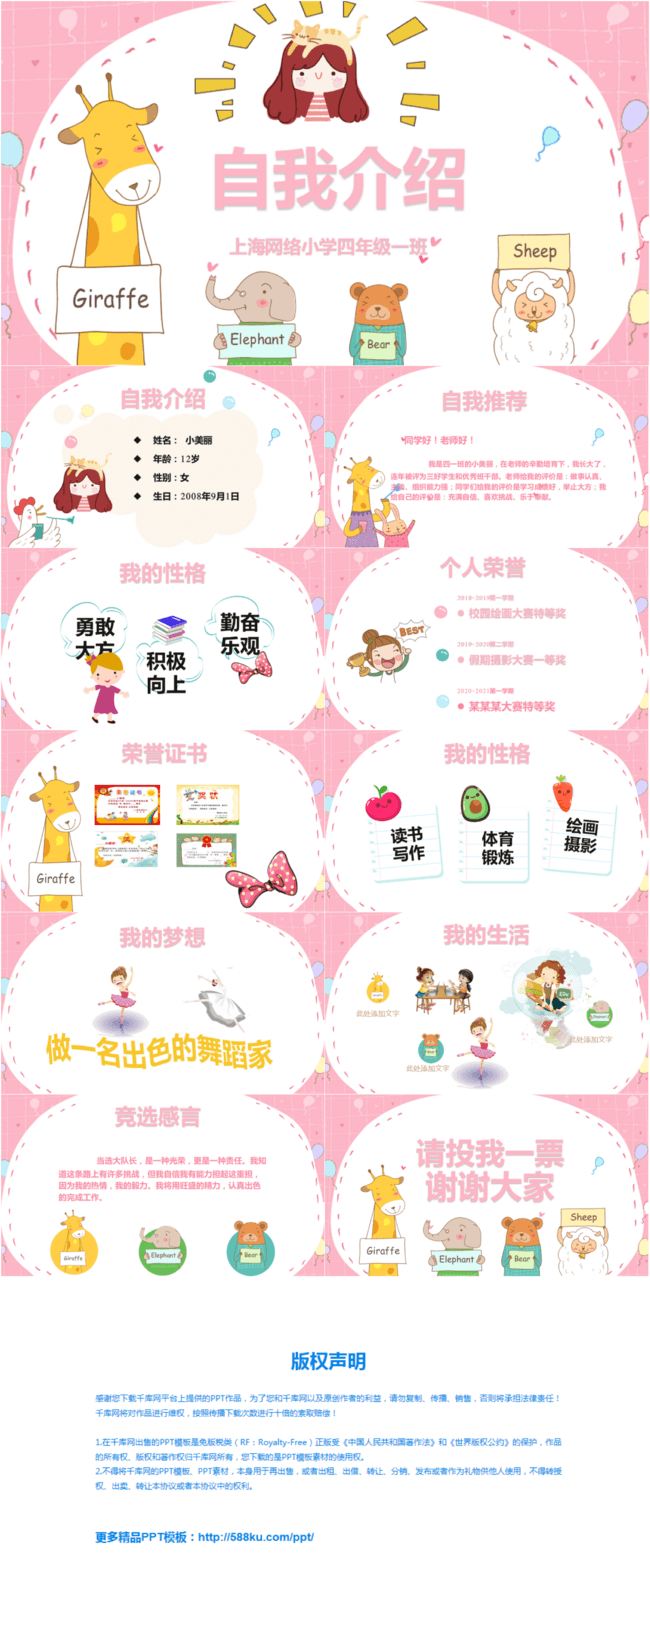 Cartoon Pink Cute Self Introduction Ppt Template Powerpoint Templete Ppt Free Download 650075222 Lovepik Com